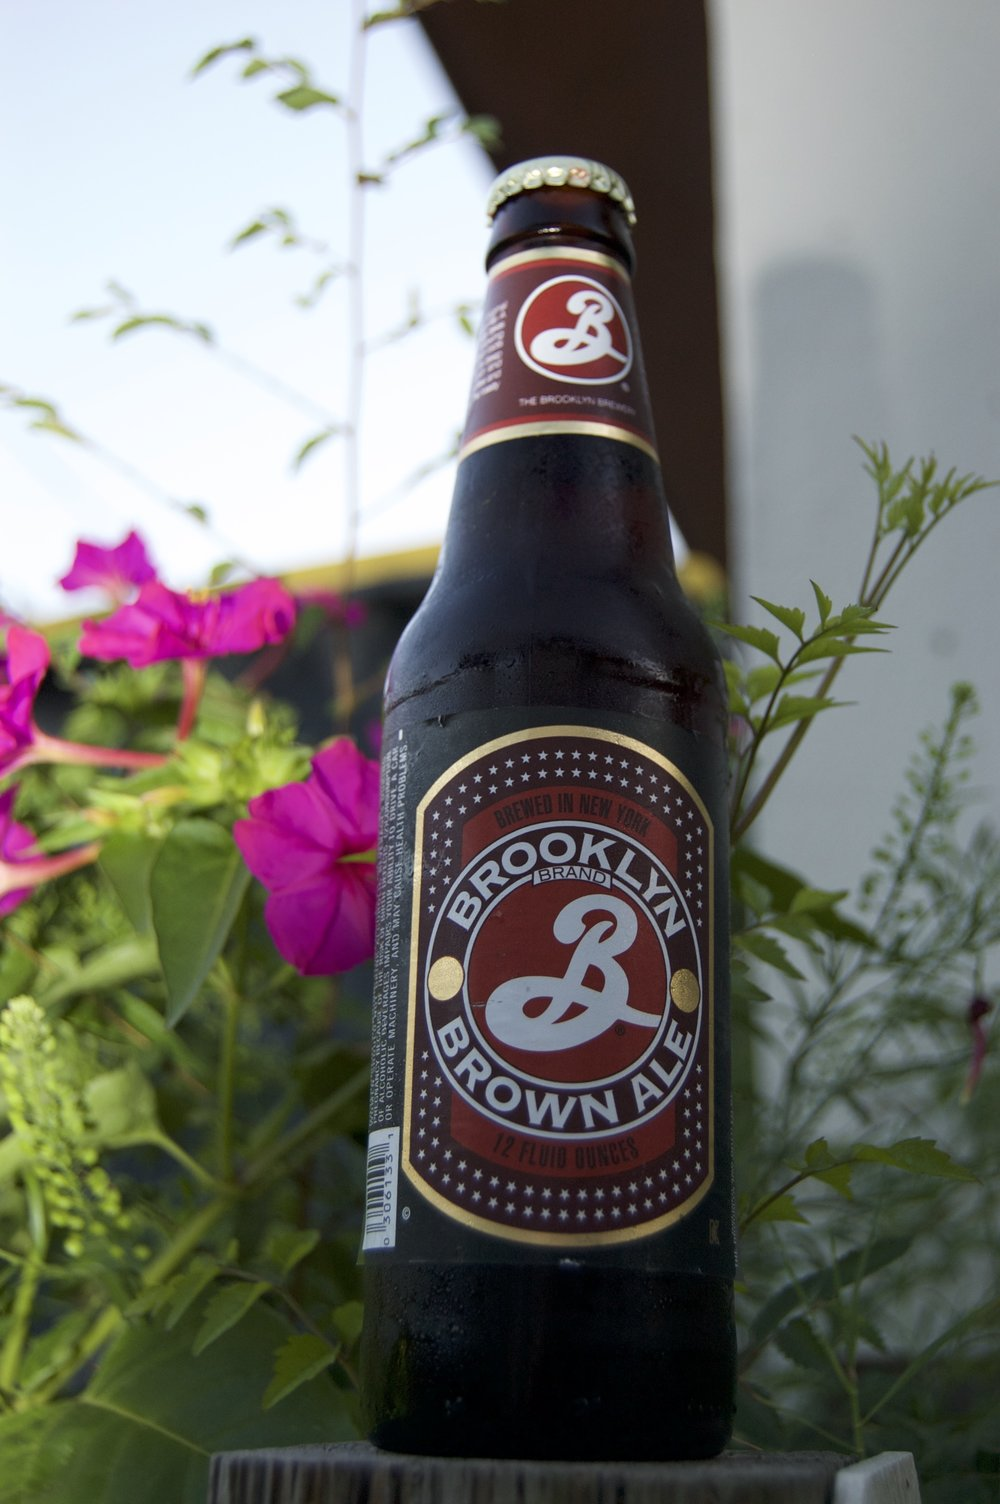 Brooklyn Brown Ale - May 2018Straight from New York to my Florida apartment. Smooth, a little hoppy, sweet and caramely.  This is the kind of beer I'd like to have while playing a game of D&D, or re-watching Labyrinth. You remember Labyrinth right? My computer keeps spell checking me because I keep spelling it wrong. It looks like